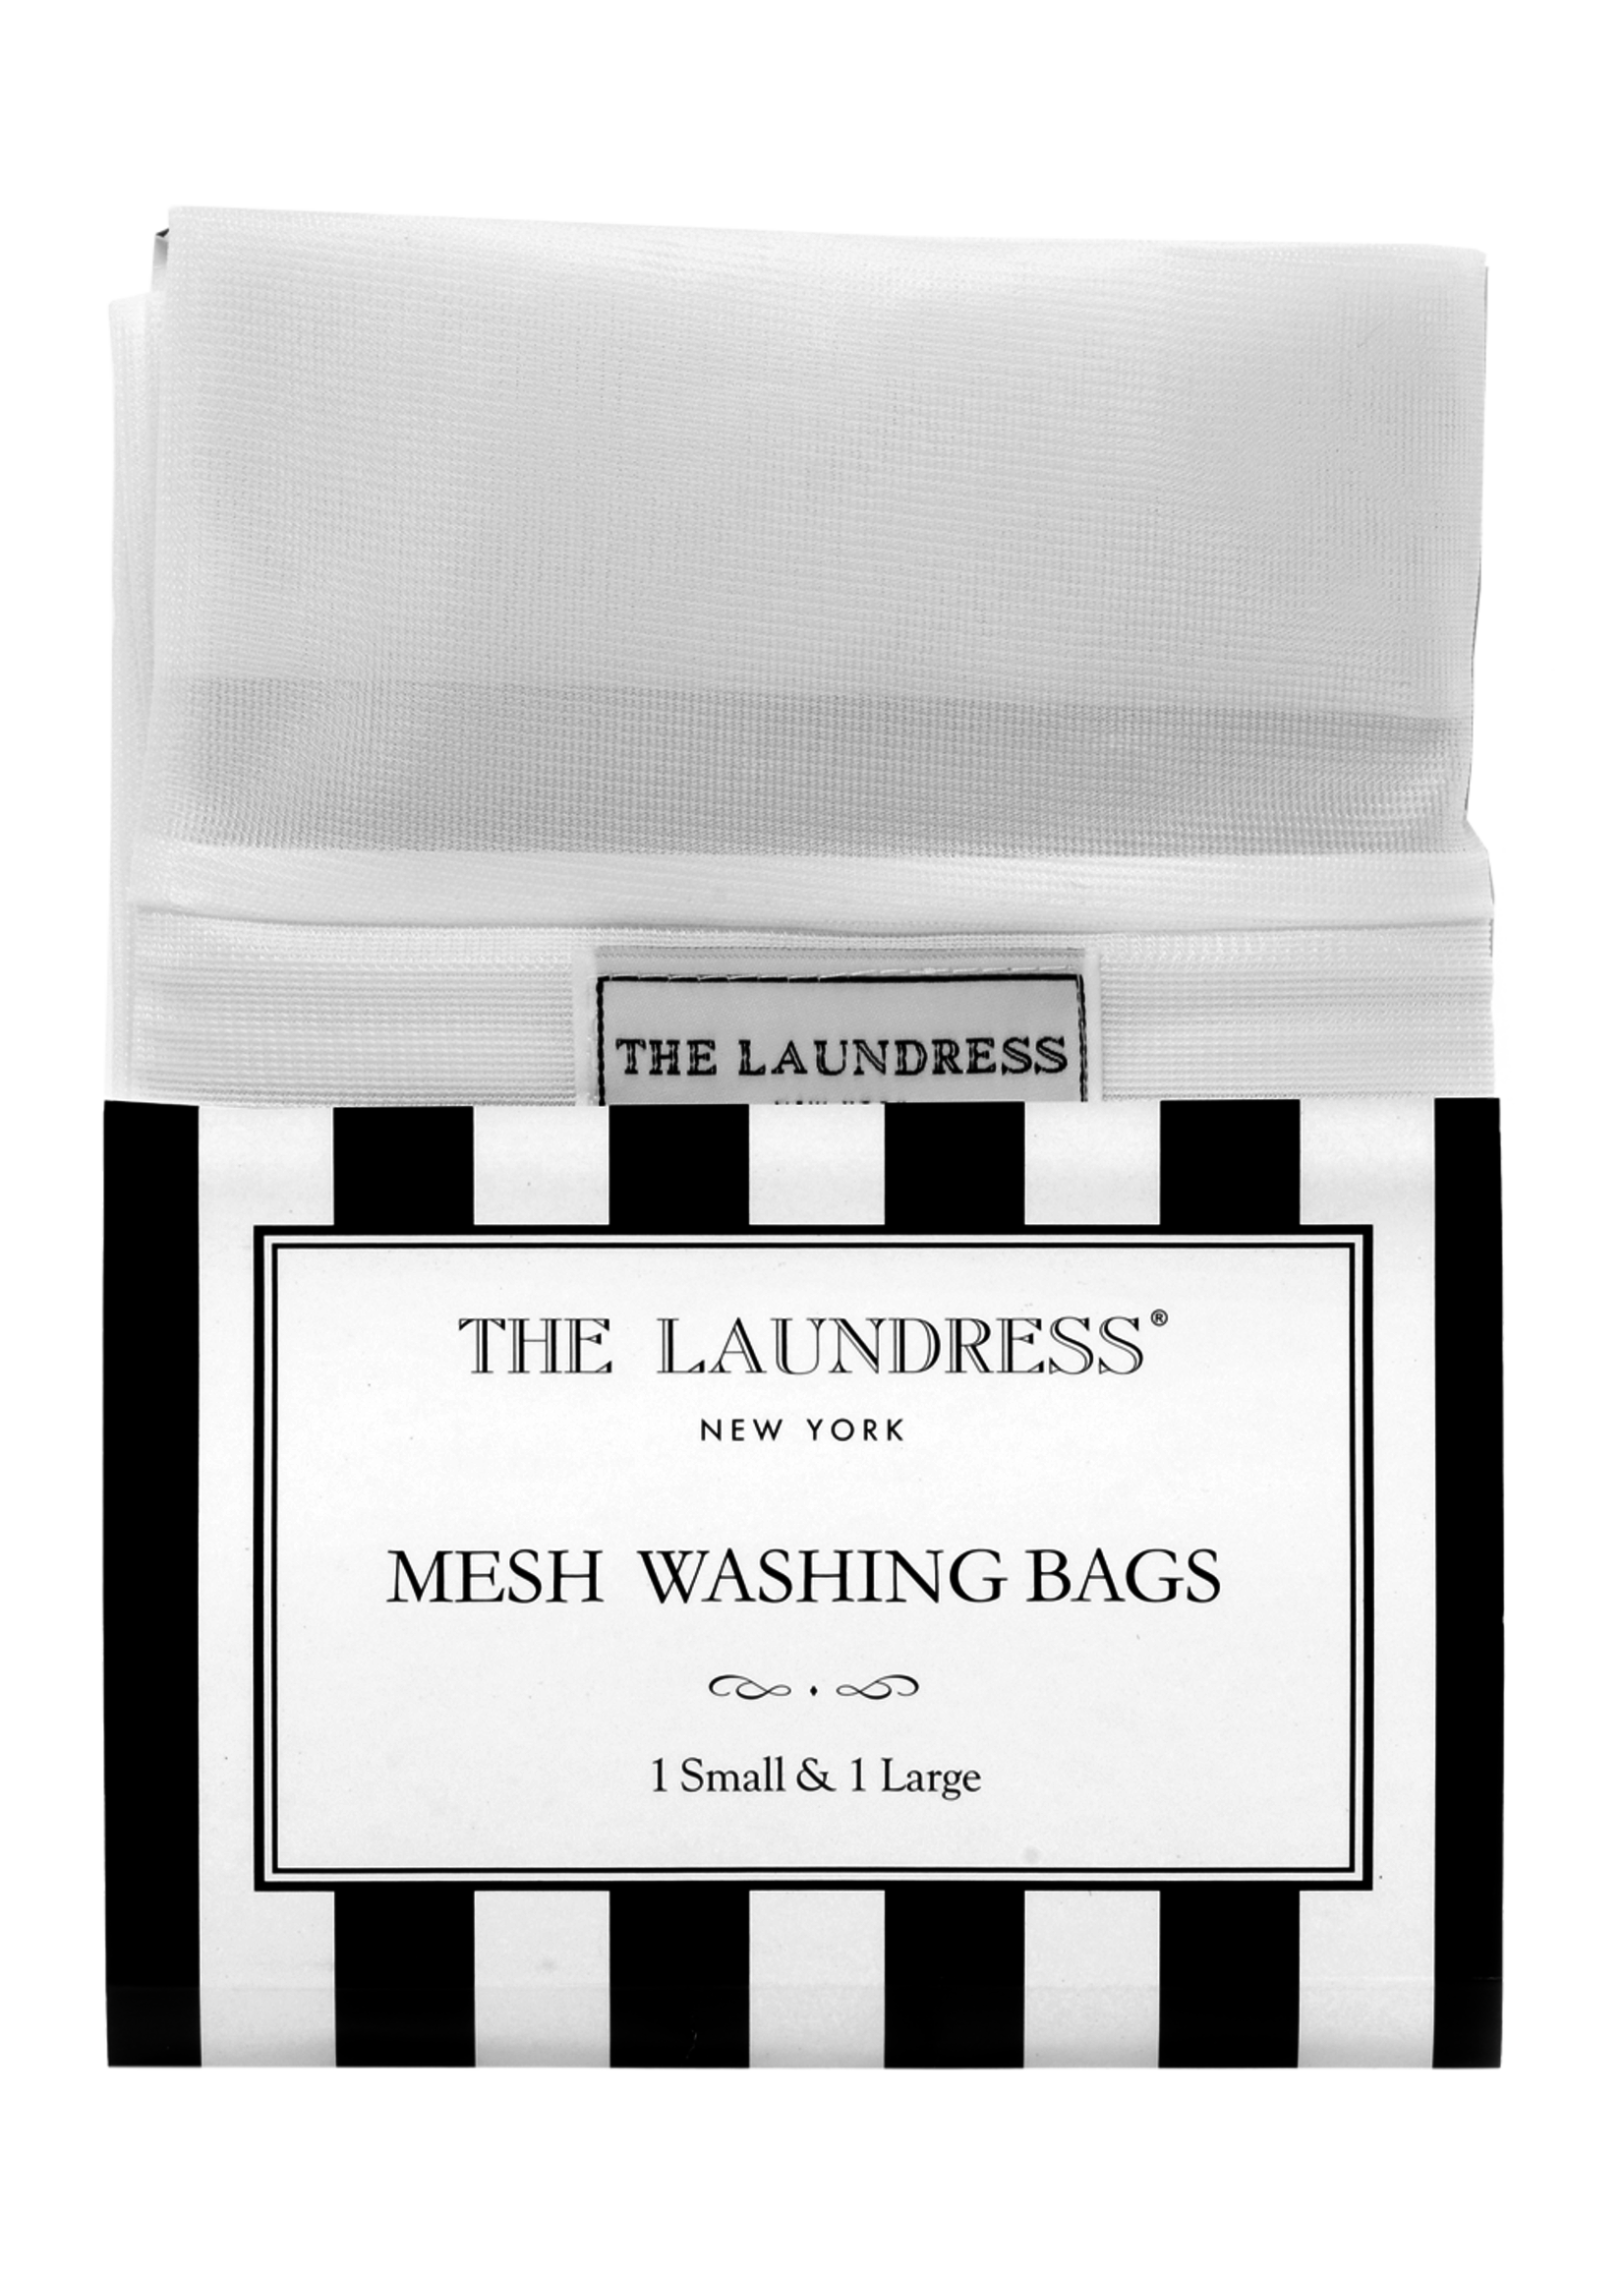 The Laundress New York Mesh Bag Bundle